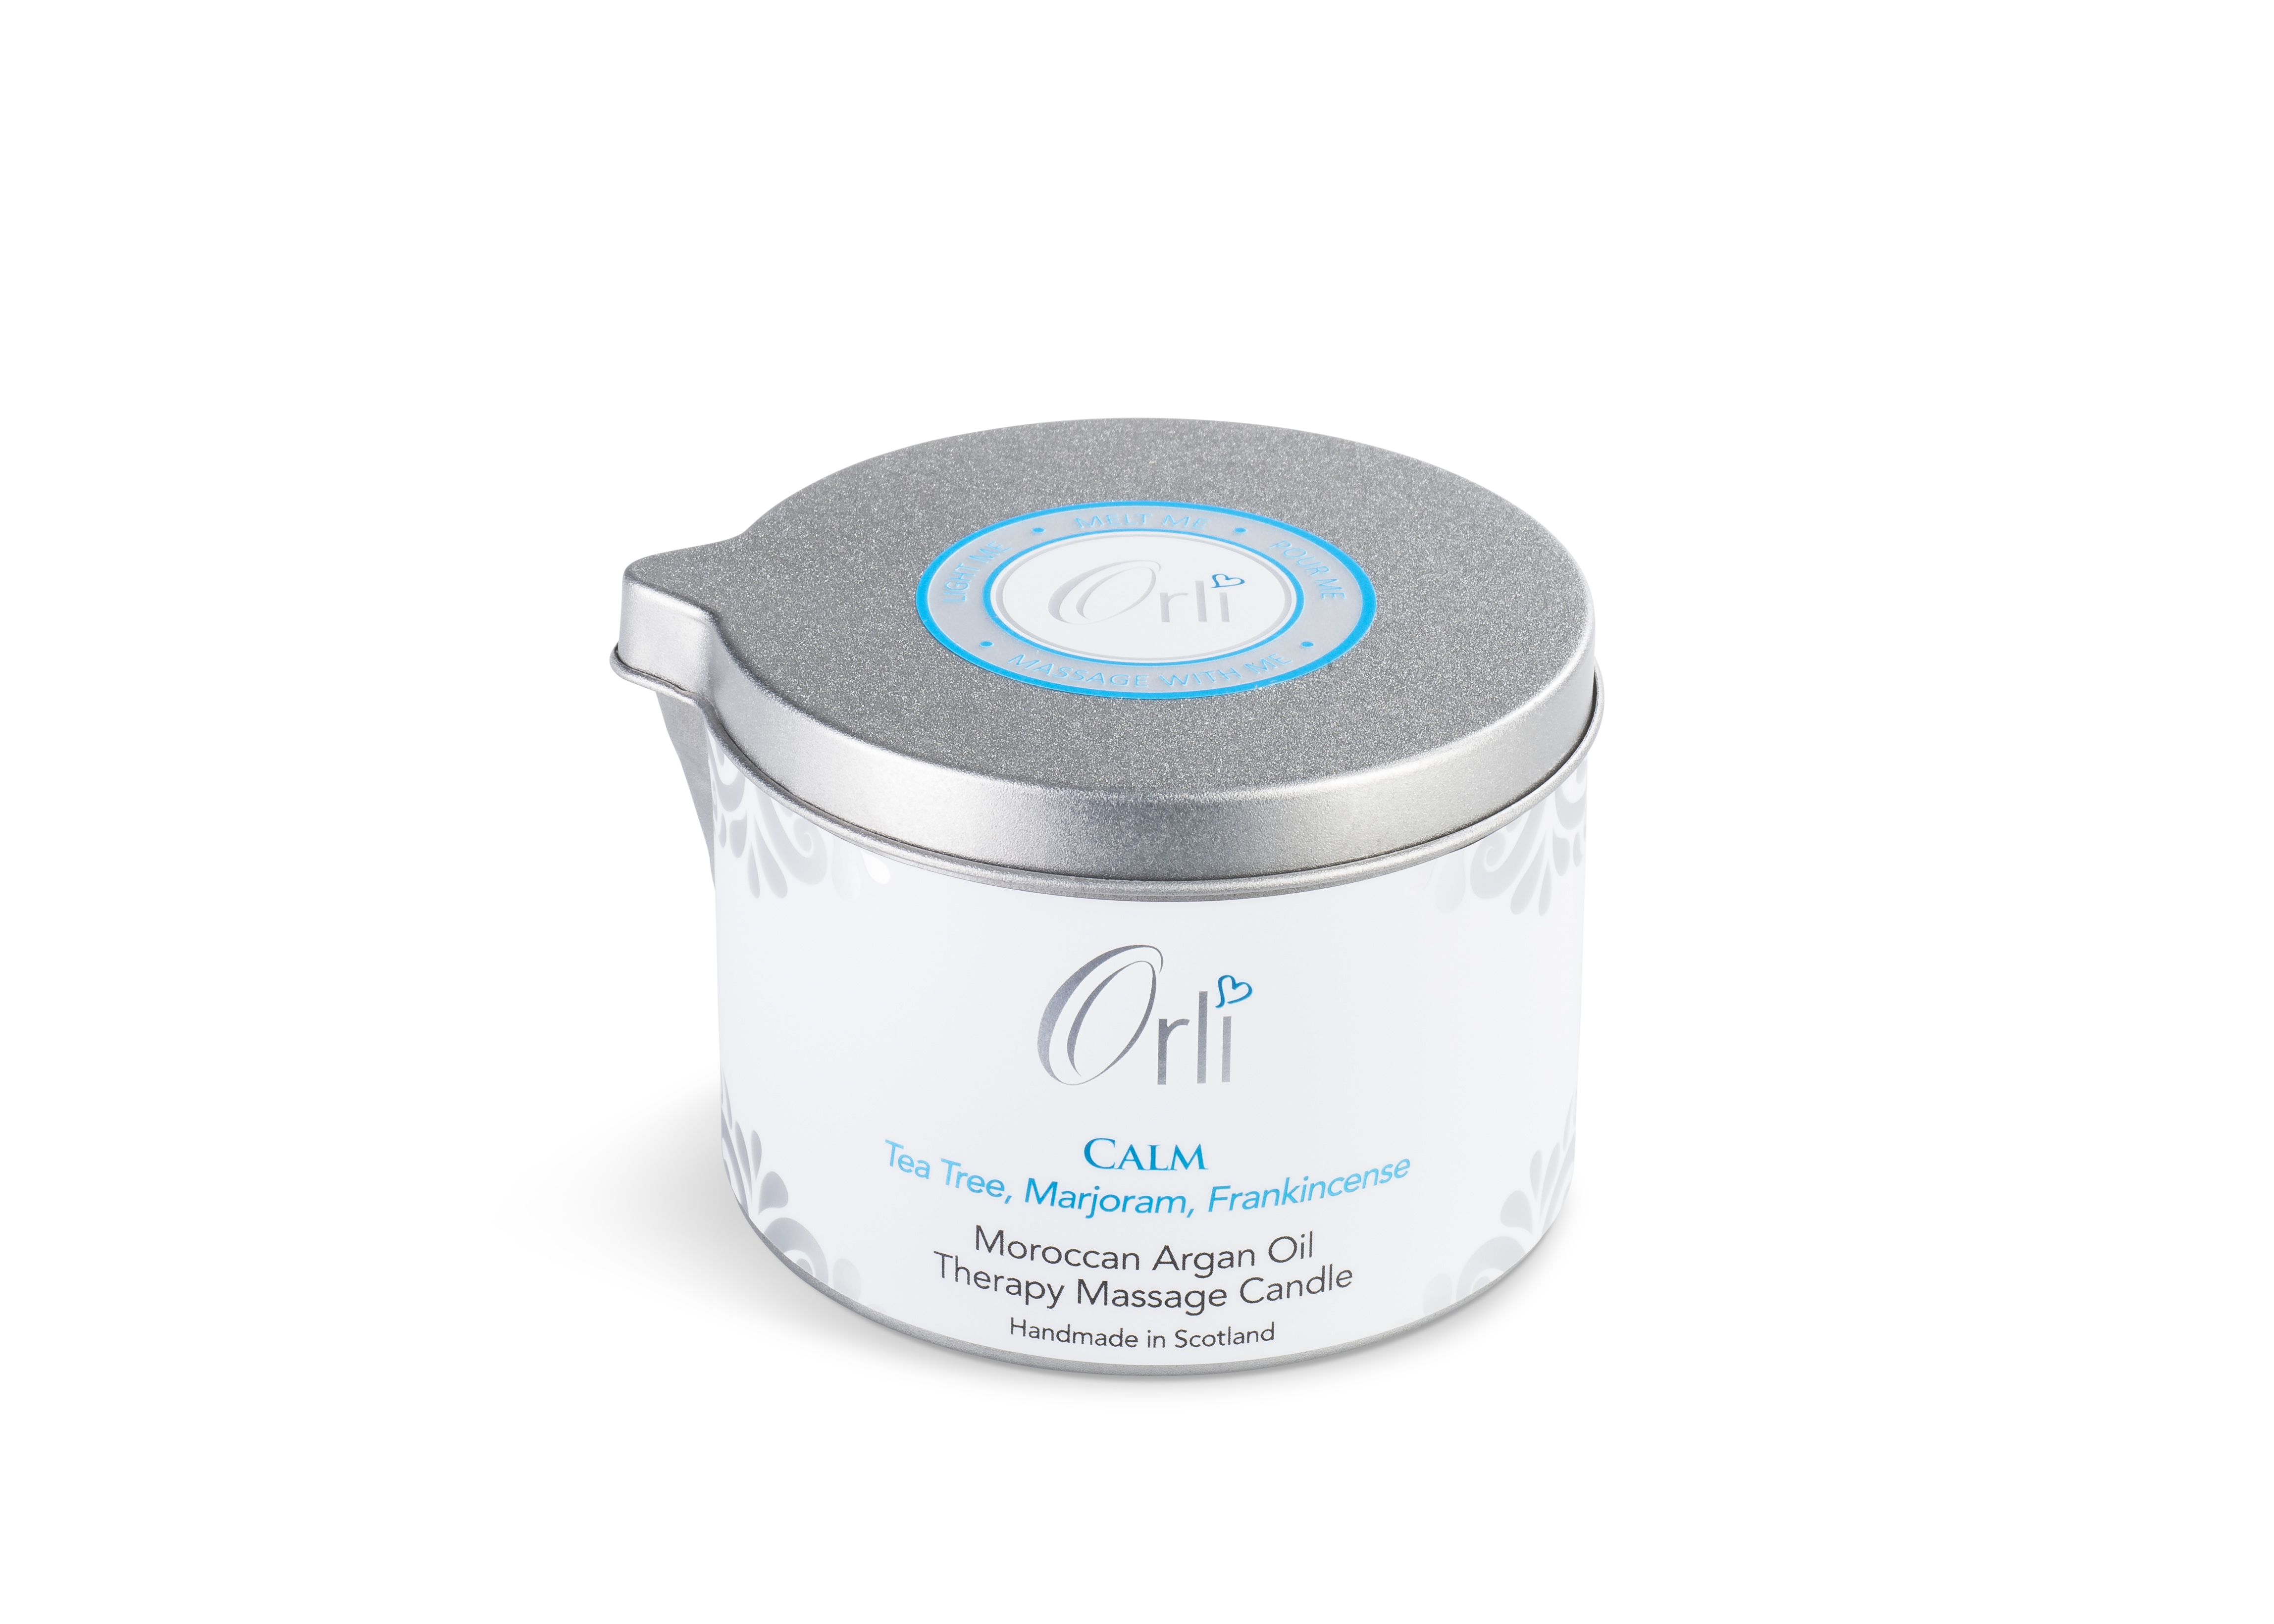 Calm Massage Candle by Orli